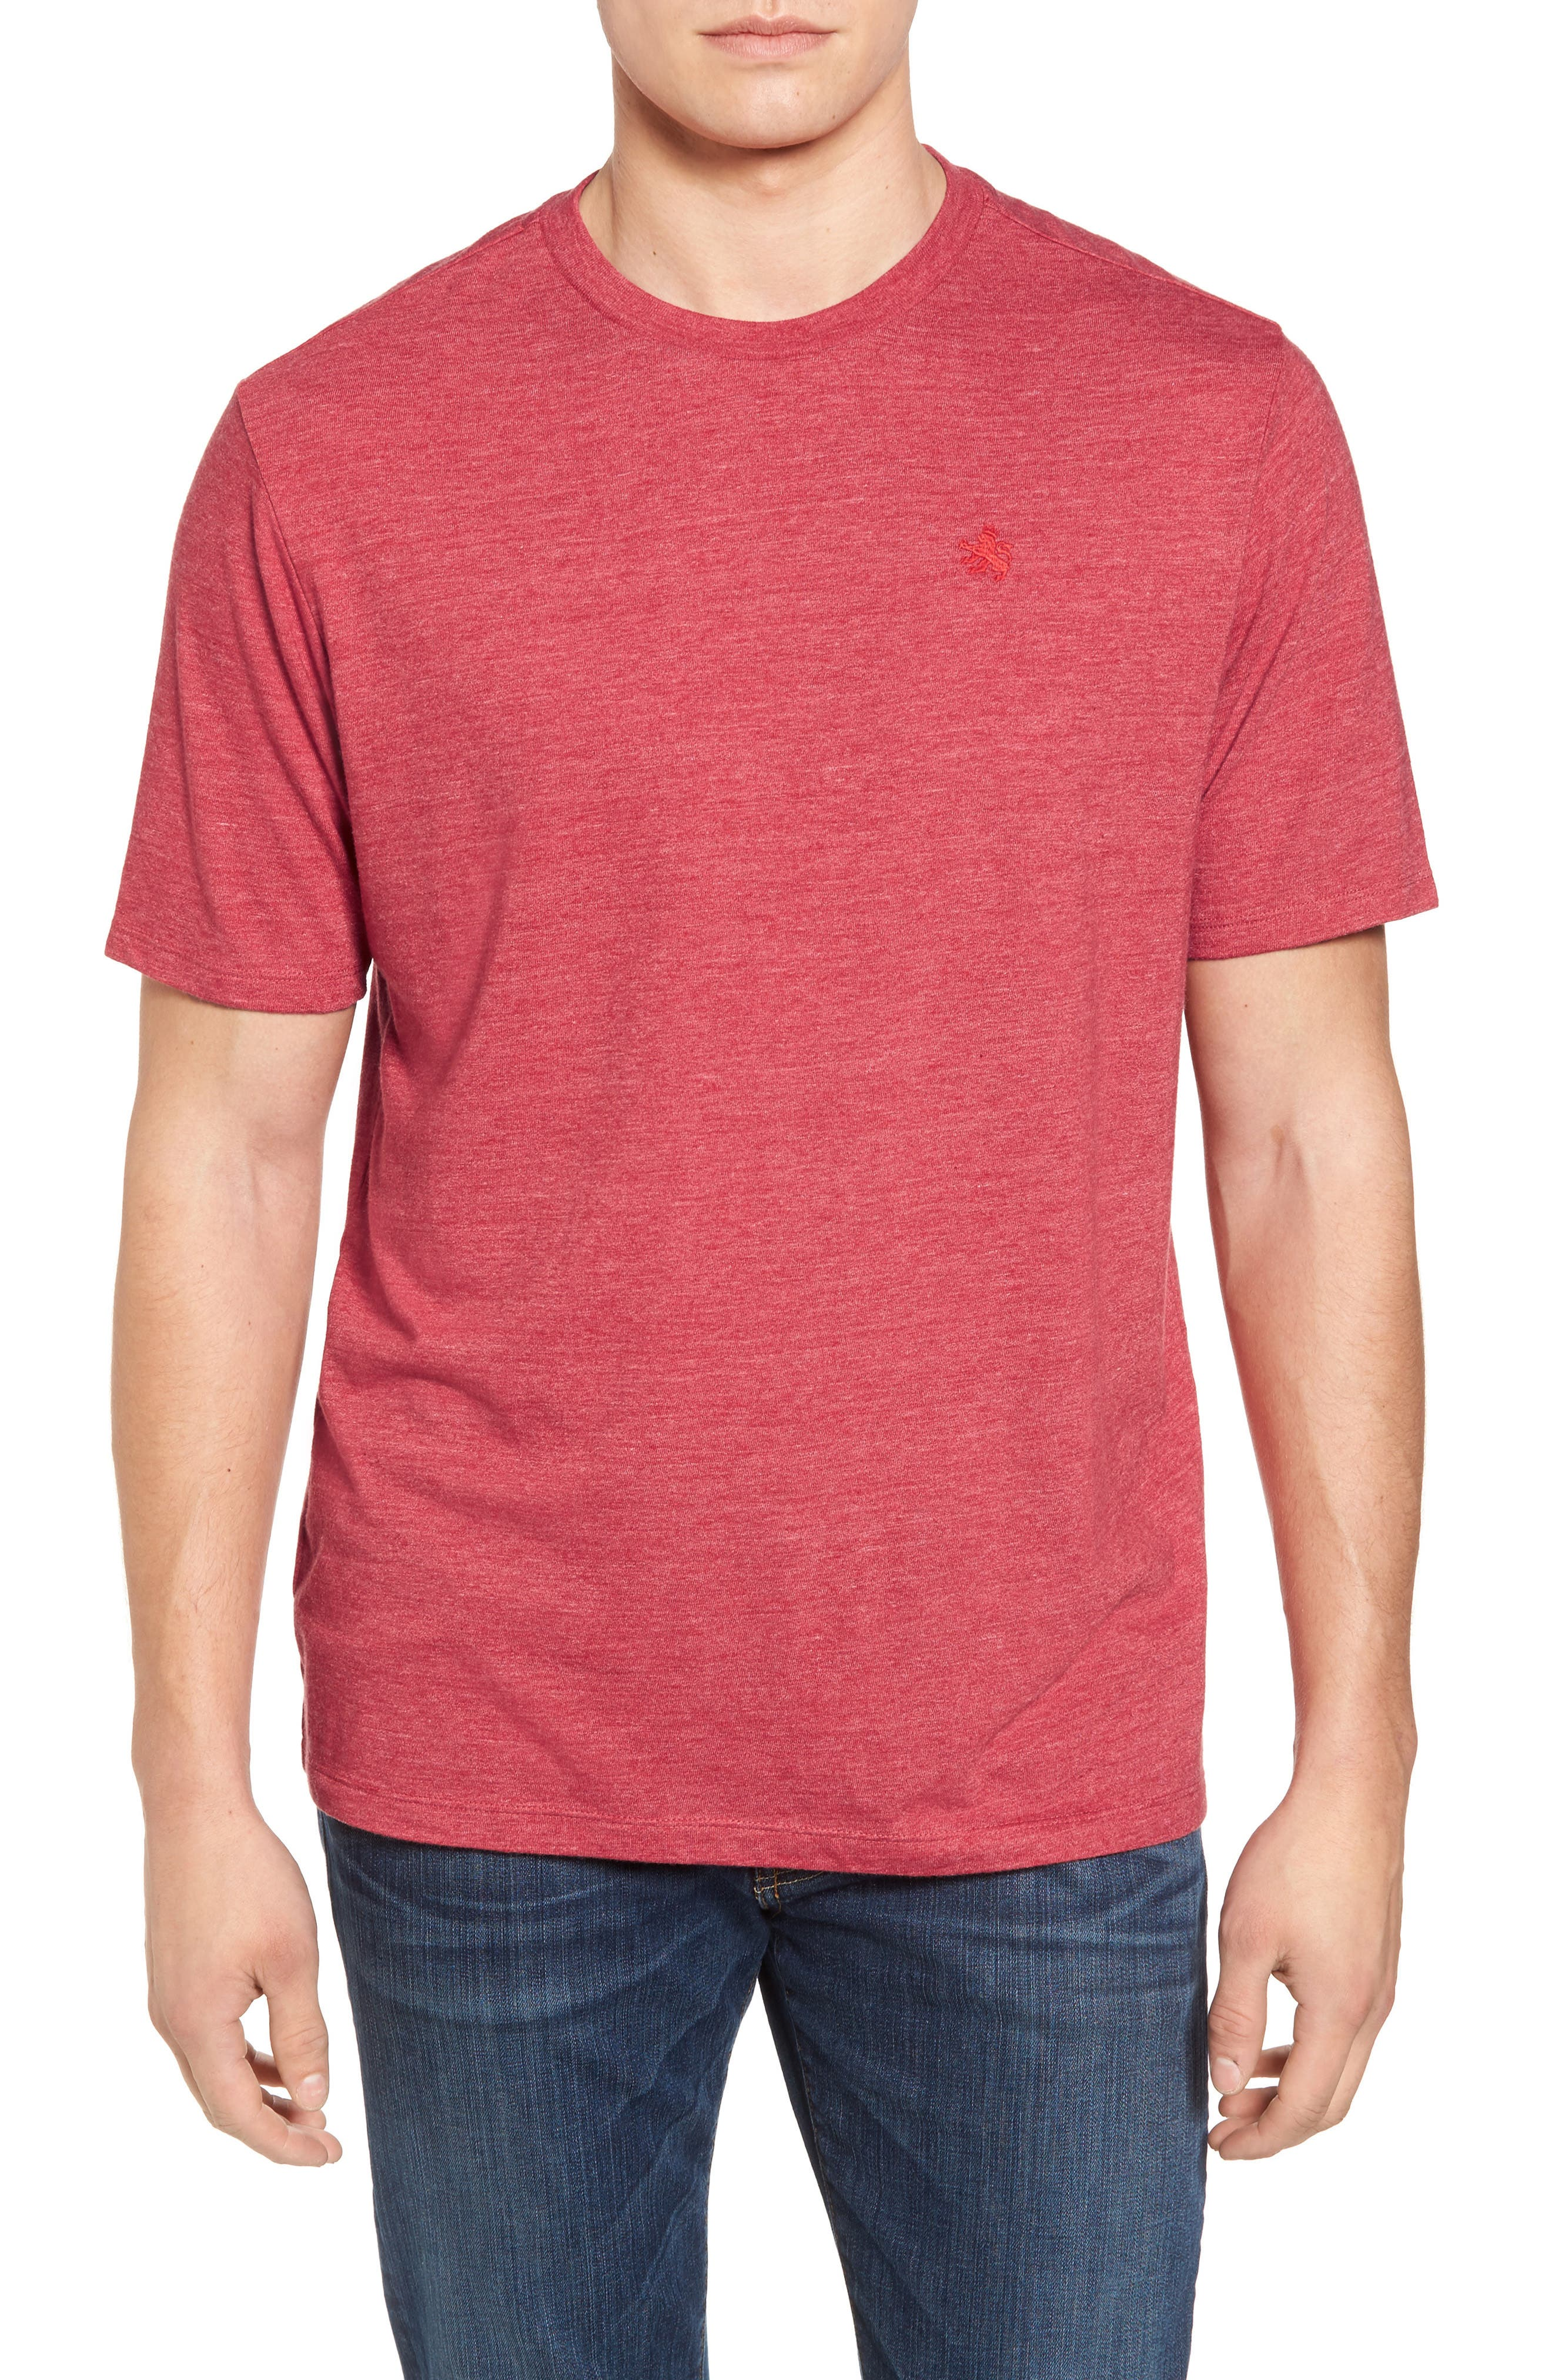 For the Good Life Graphic T-Shirt,                         Main,                         color, 603